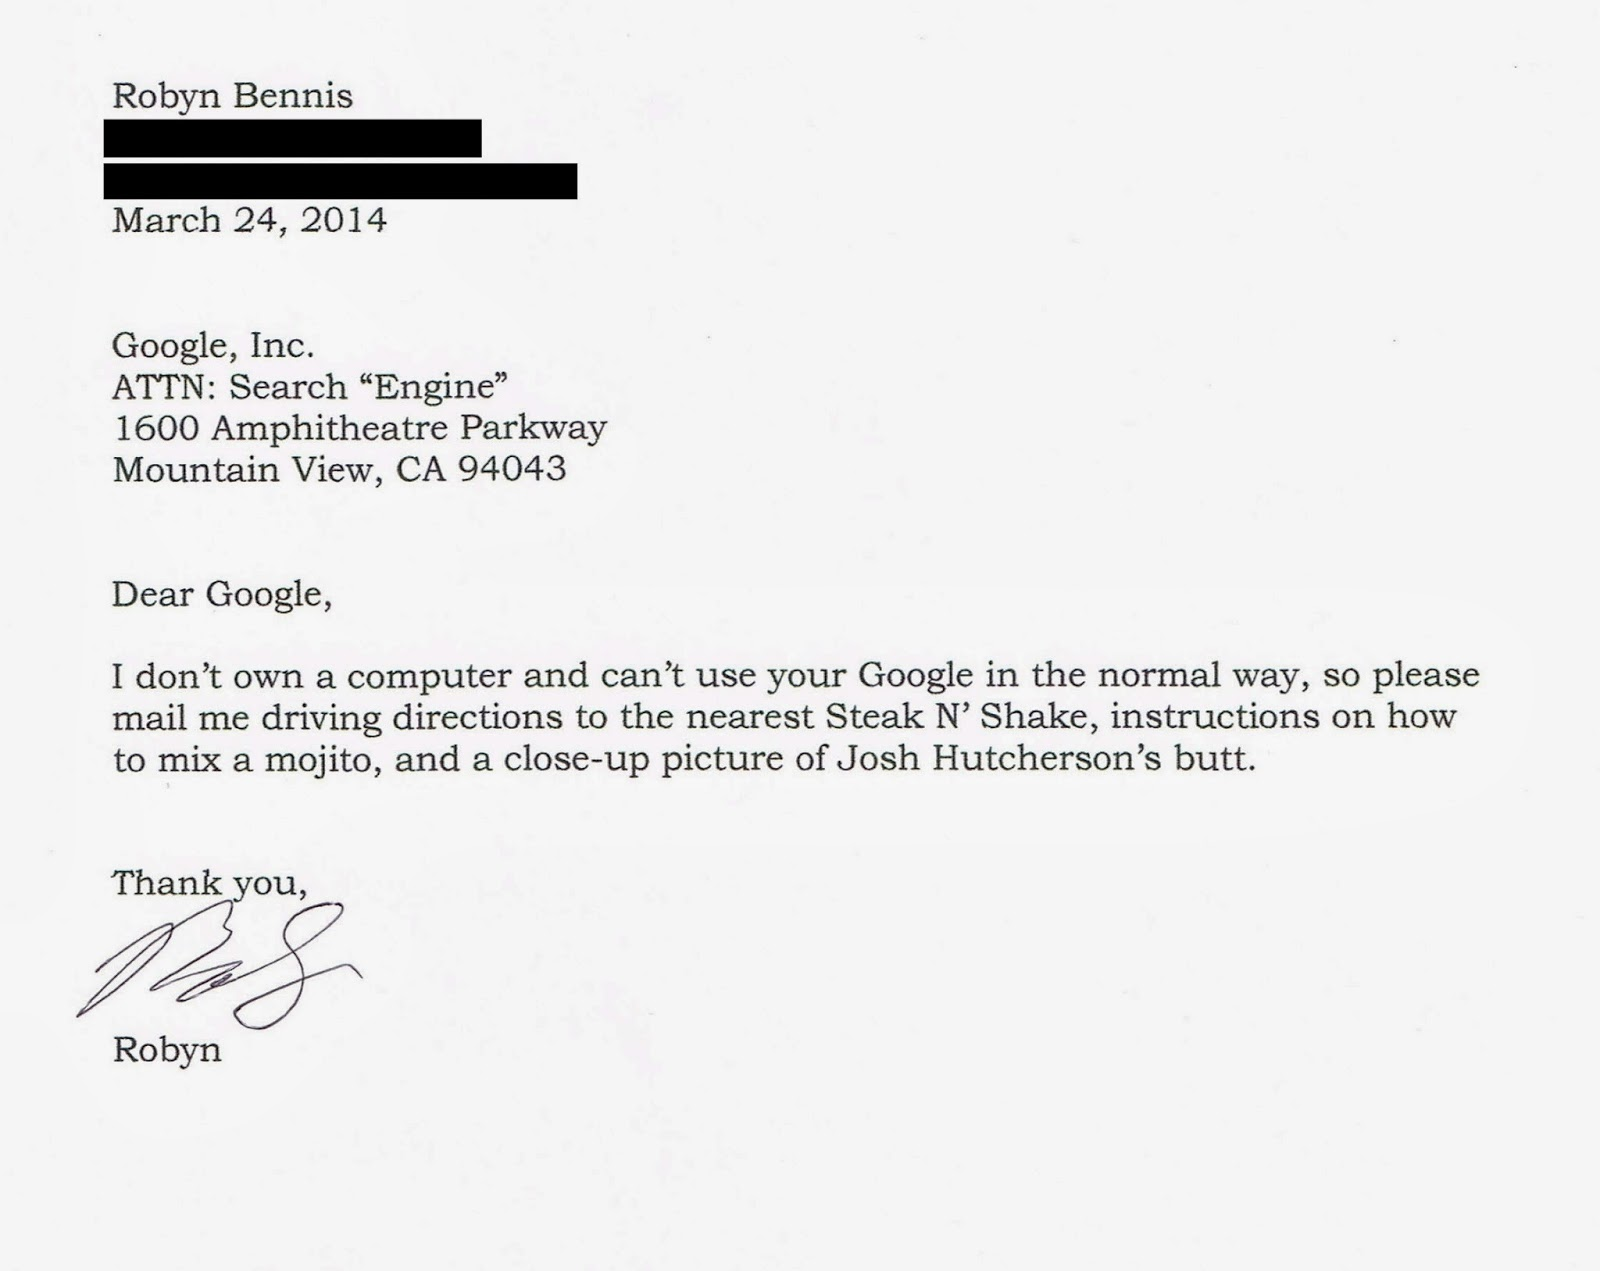 Google Search via letter: Steak N' Shake, mojito, Josh Hutcherson's butt